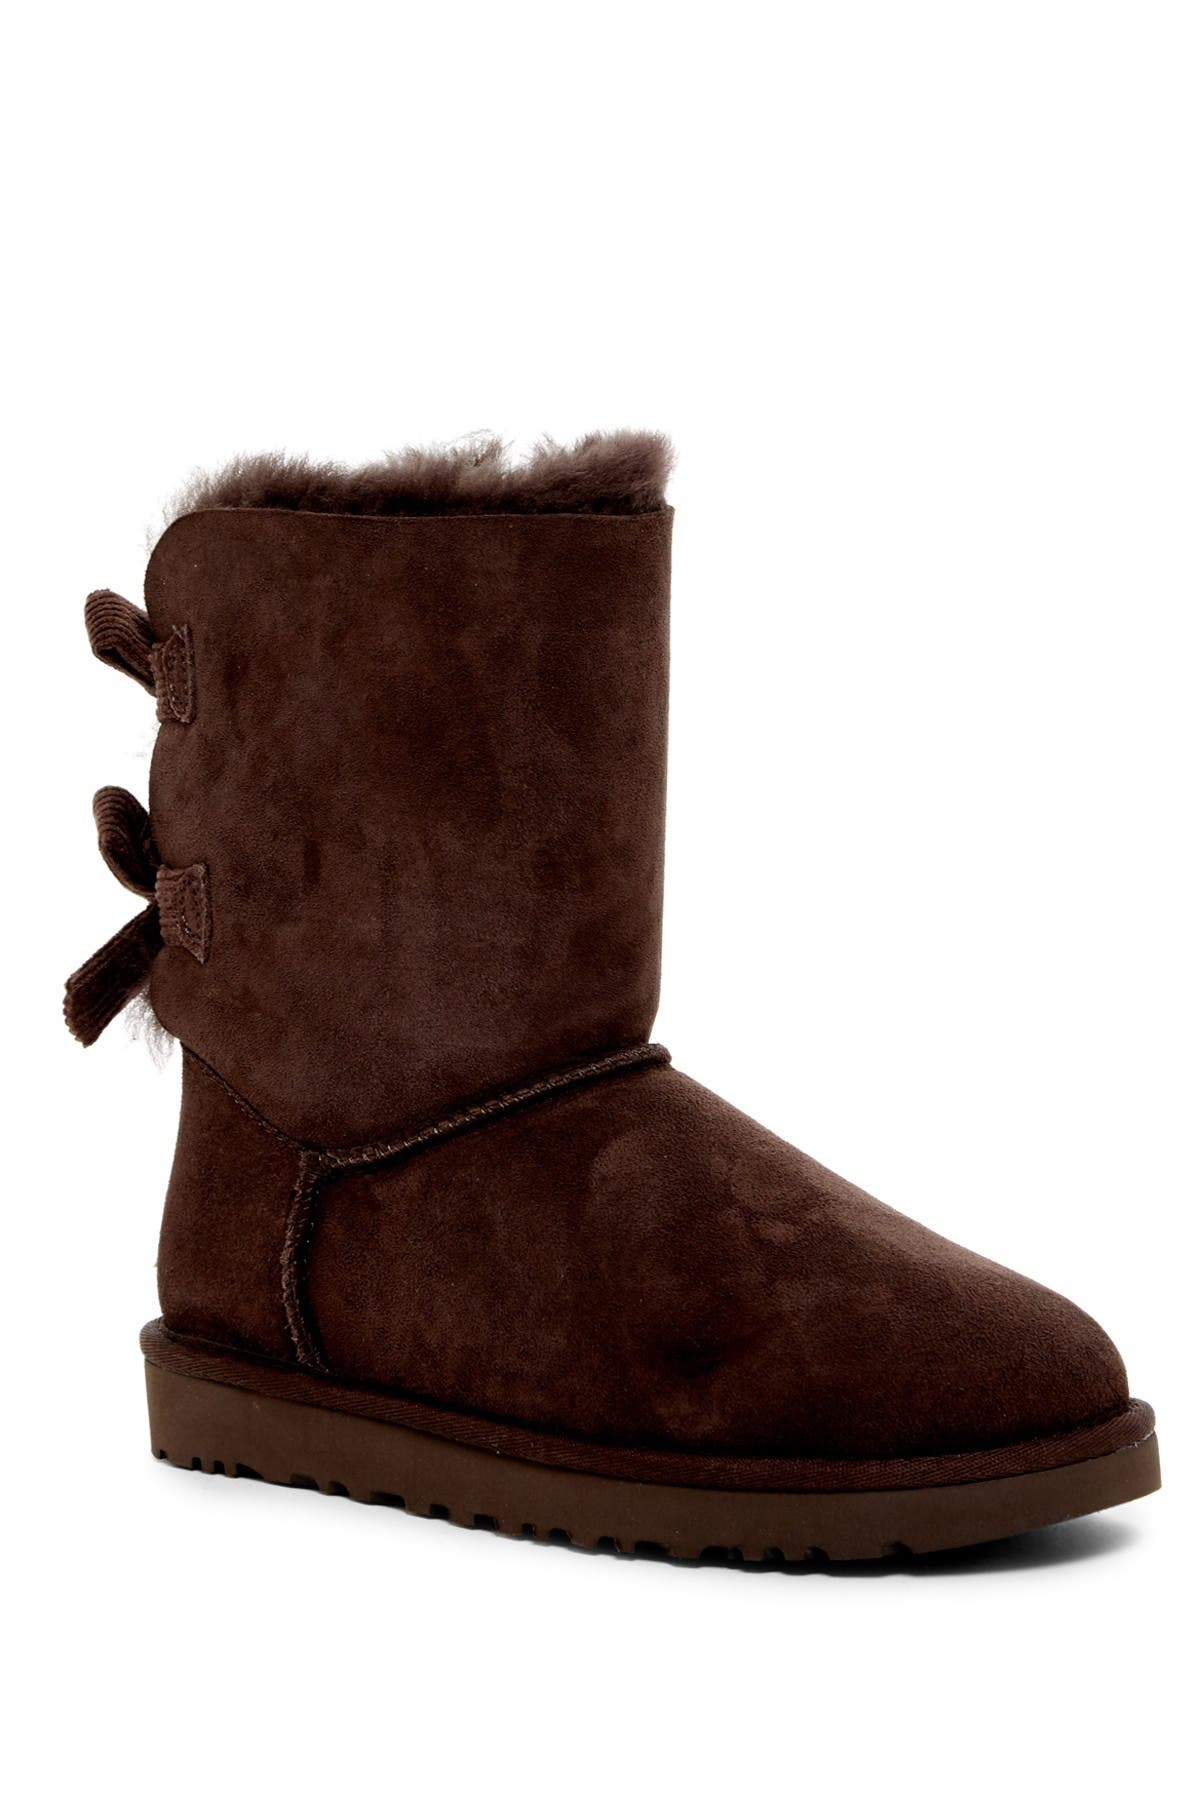 Image of UGG Bailey Twinface Genuine Shearling &  Bow Corduroy Boot